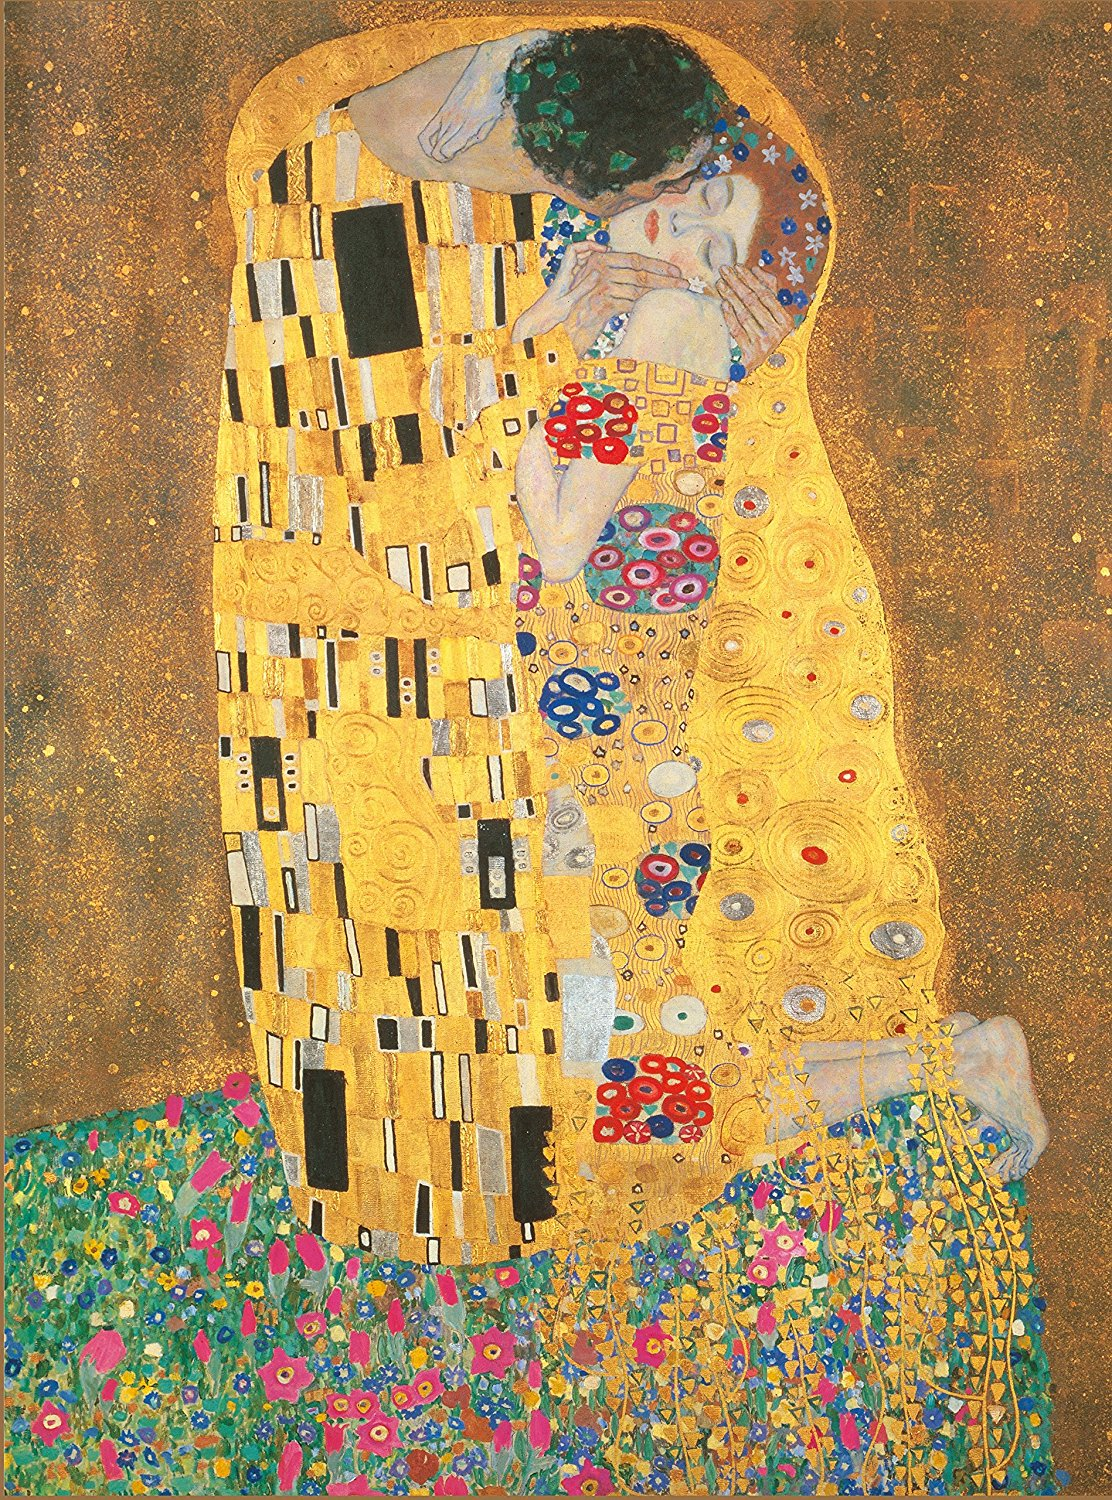 Imagine, you and me ft. Calville Gustav-klimt-the-kiss-jigsaw-puzzle-500-pieces-62400-1-fs